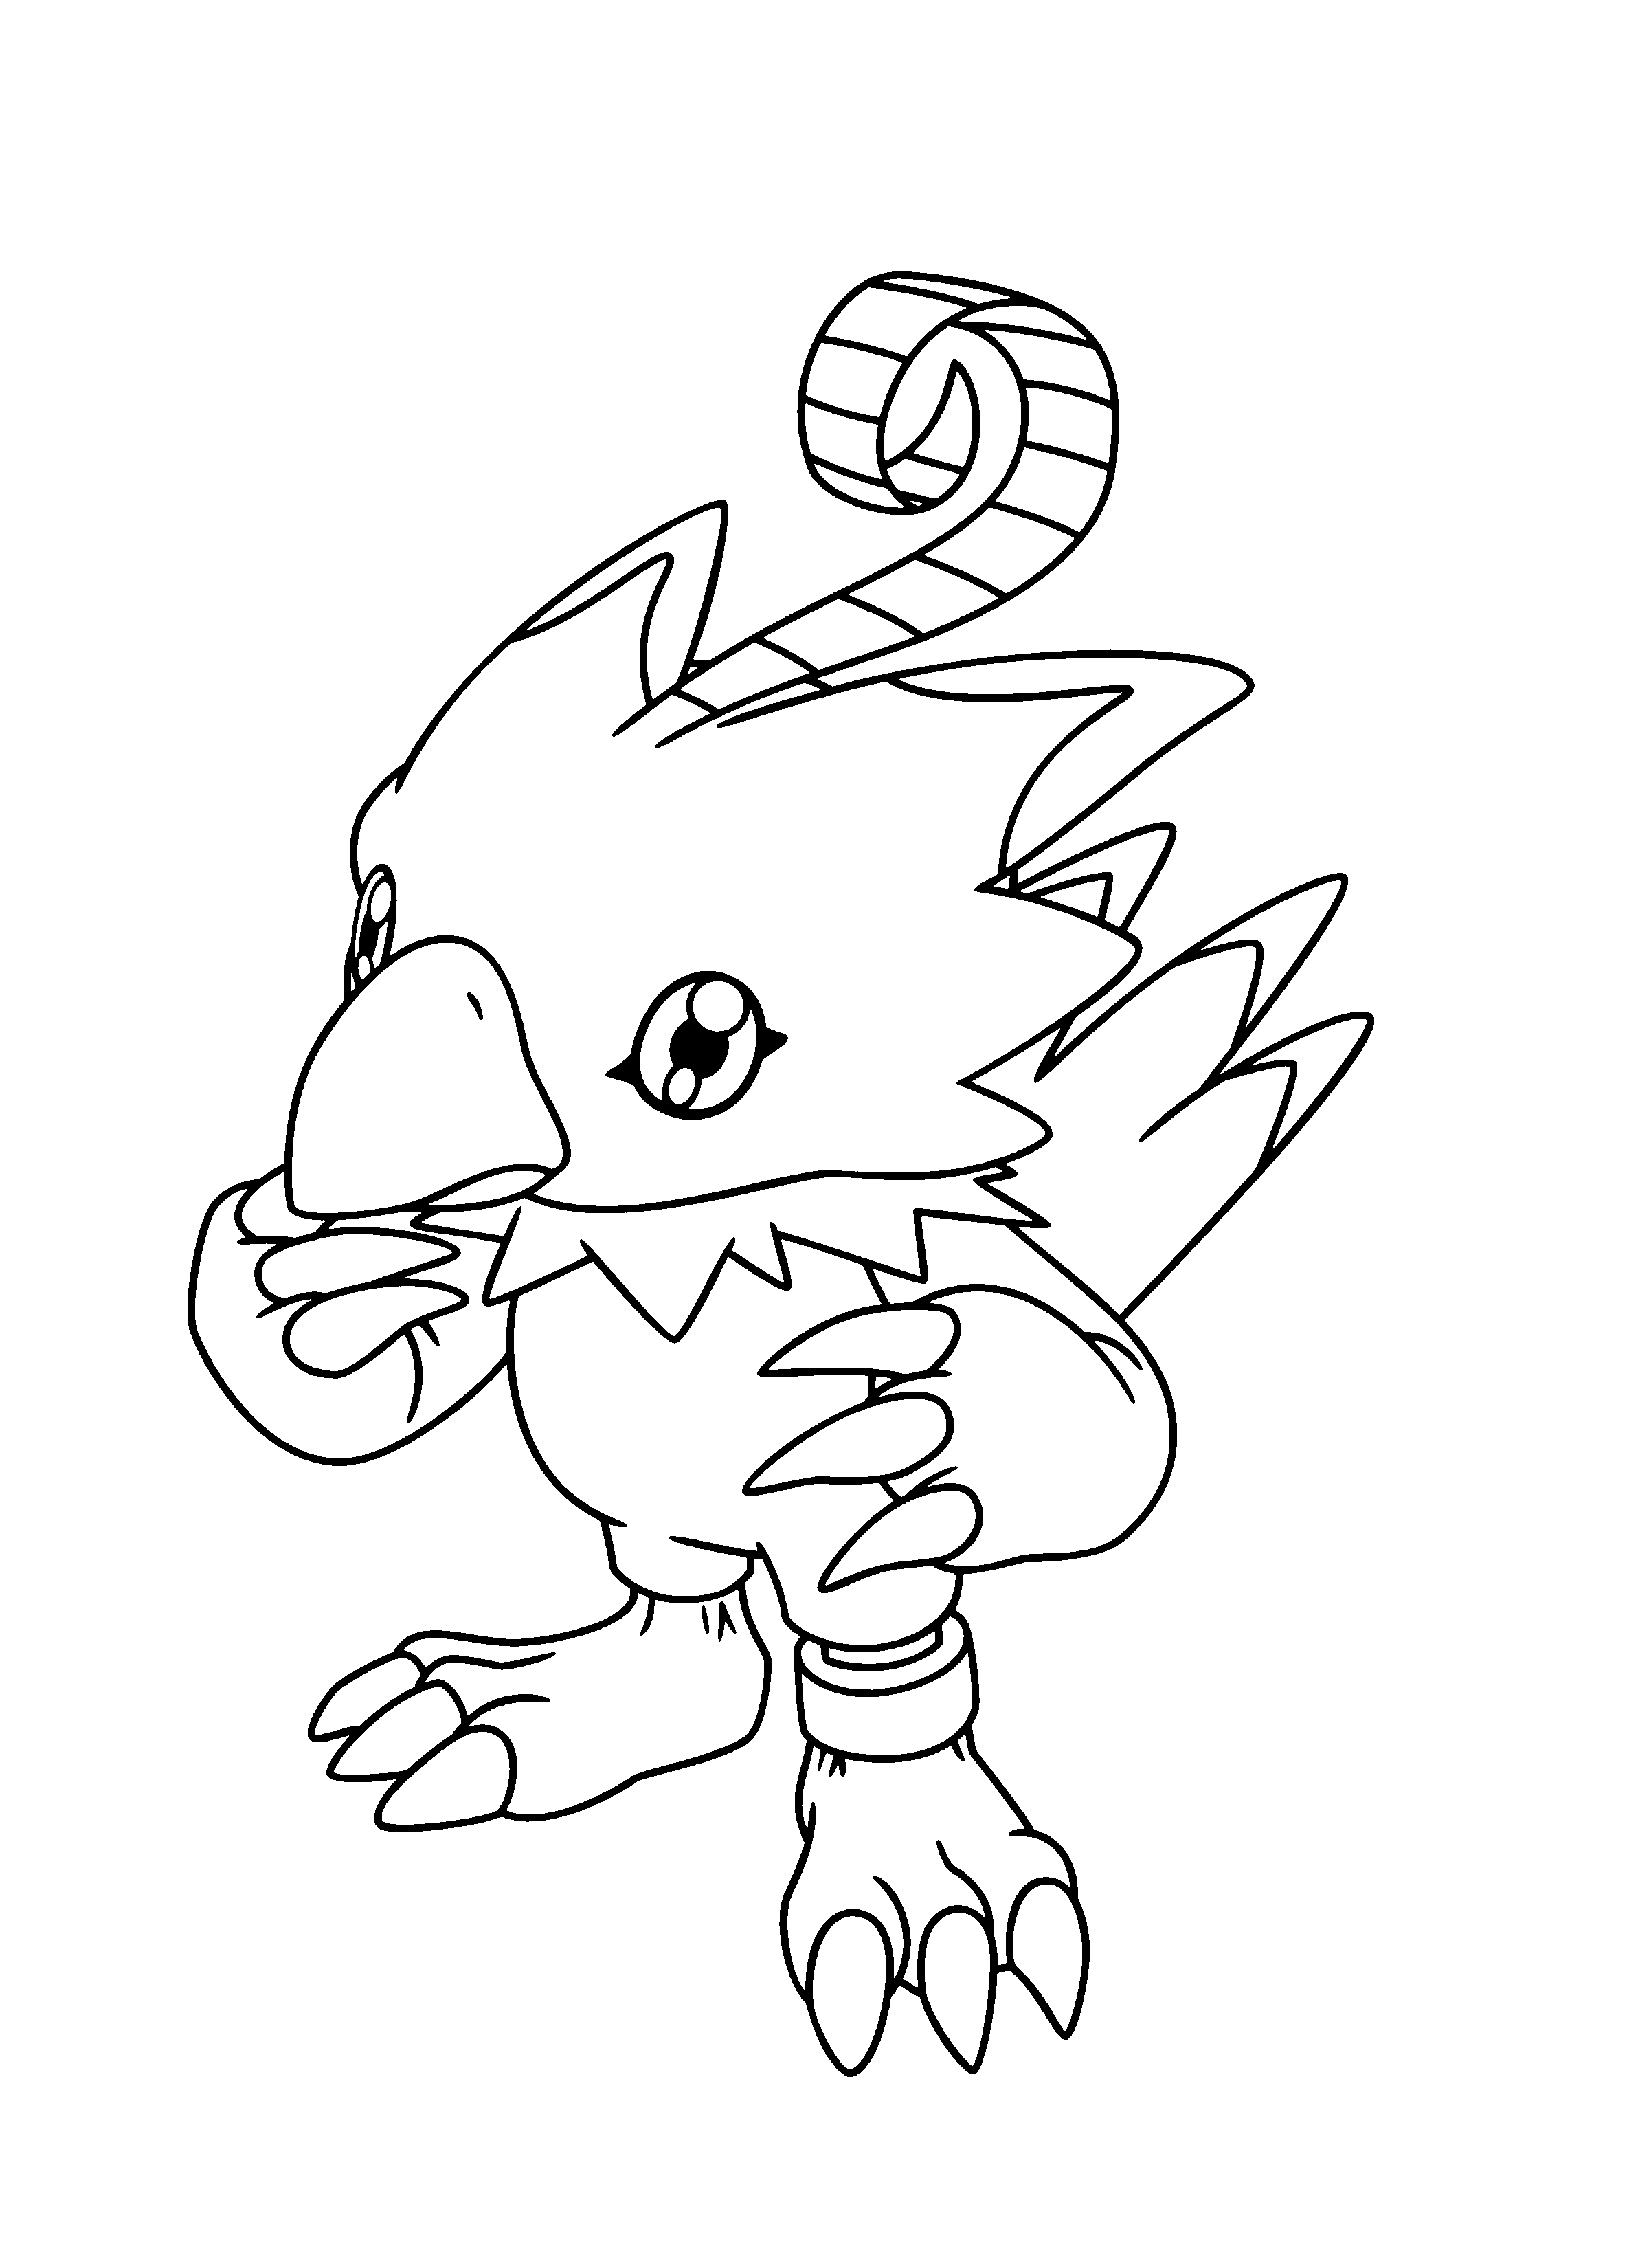 digimon coloring pages Digimon Coloring Pages Coloringpages1001